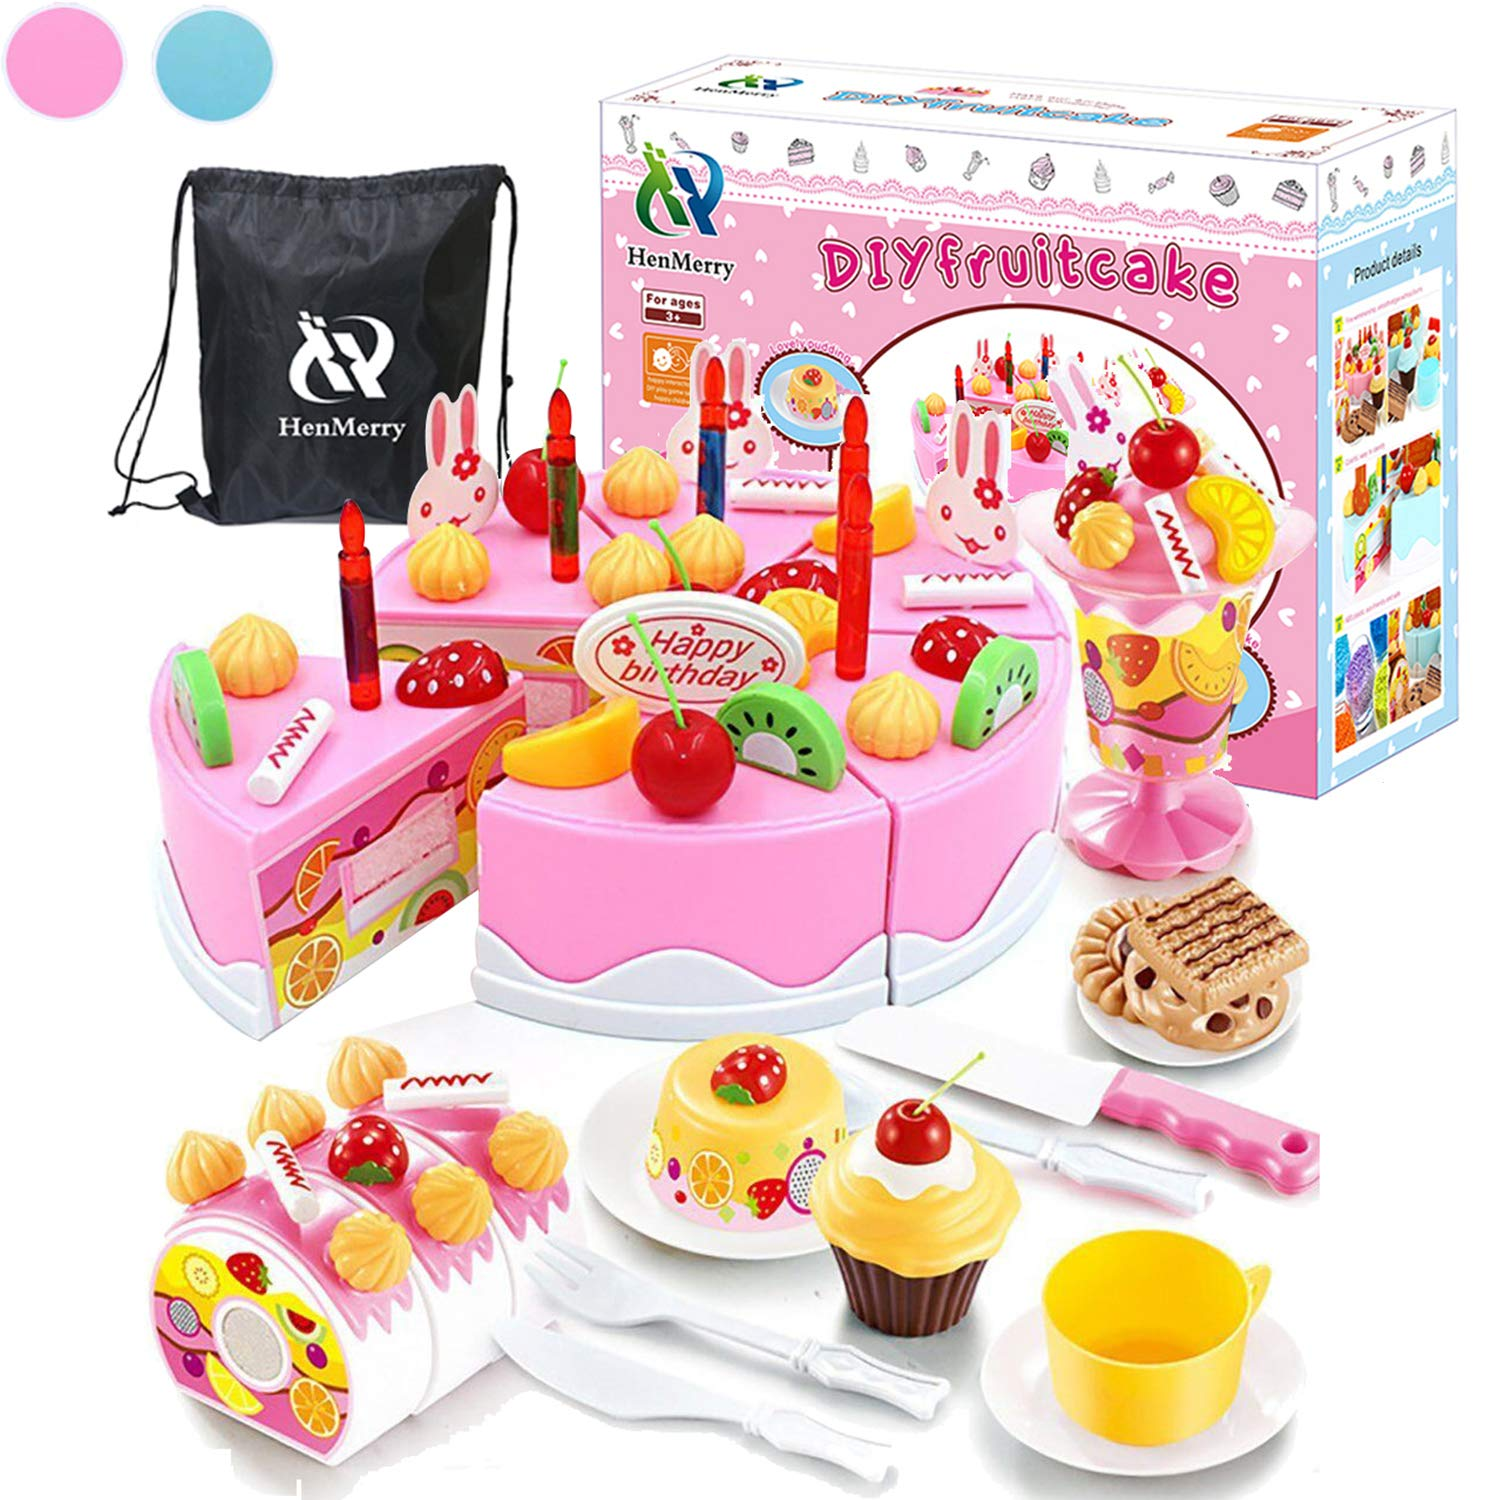 HenMerry 75PCS Birthday Cake Toy DIY Cutting Play Set Kids Kitchen Food Pretend Best For Girls Party Gift Pink